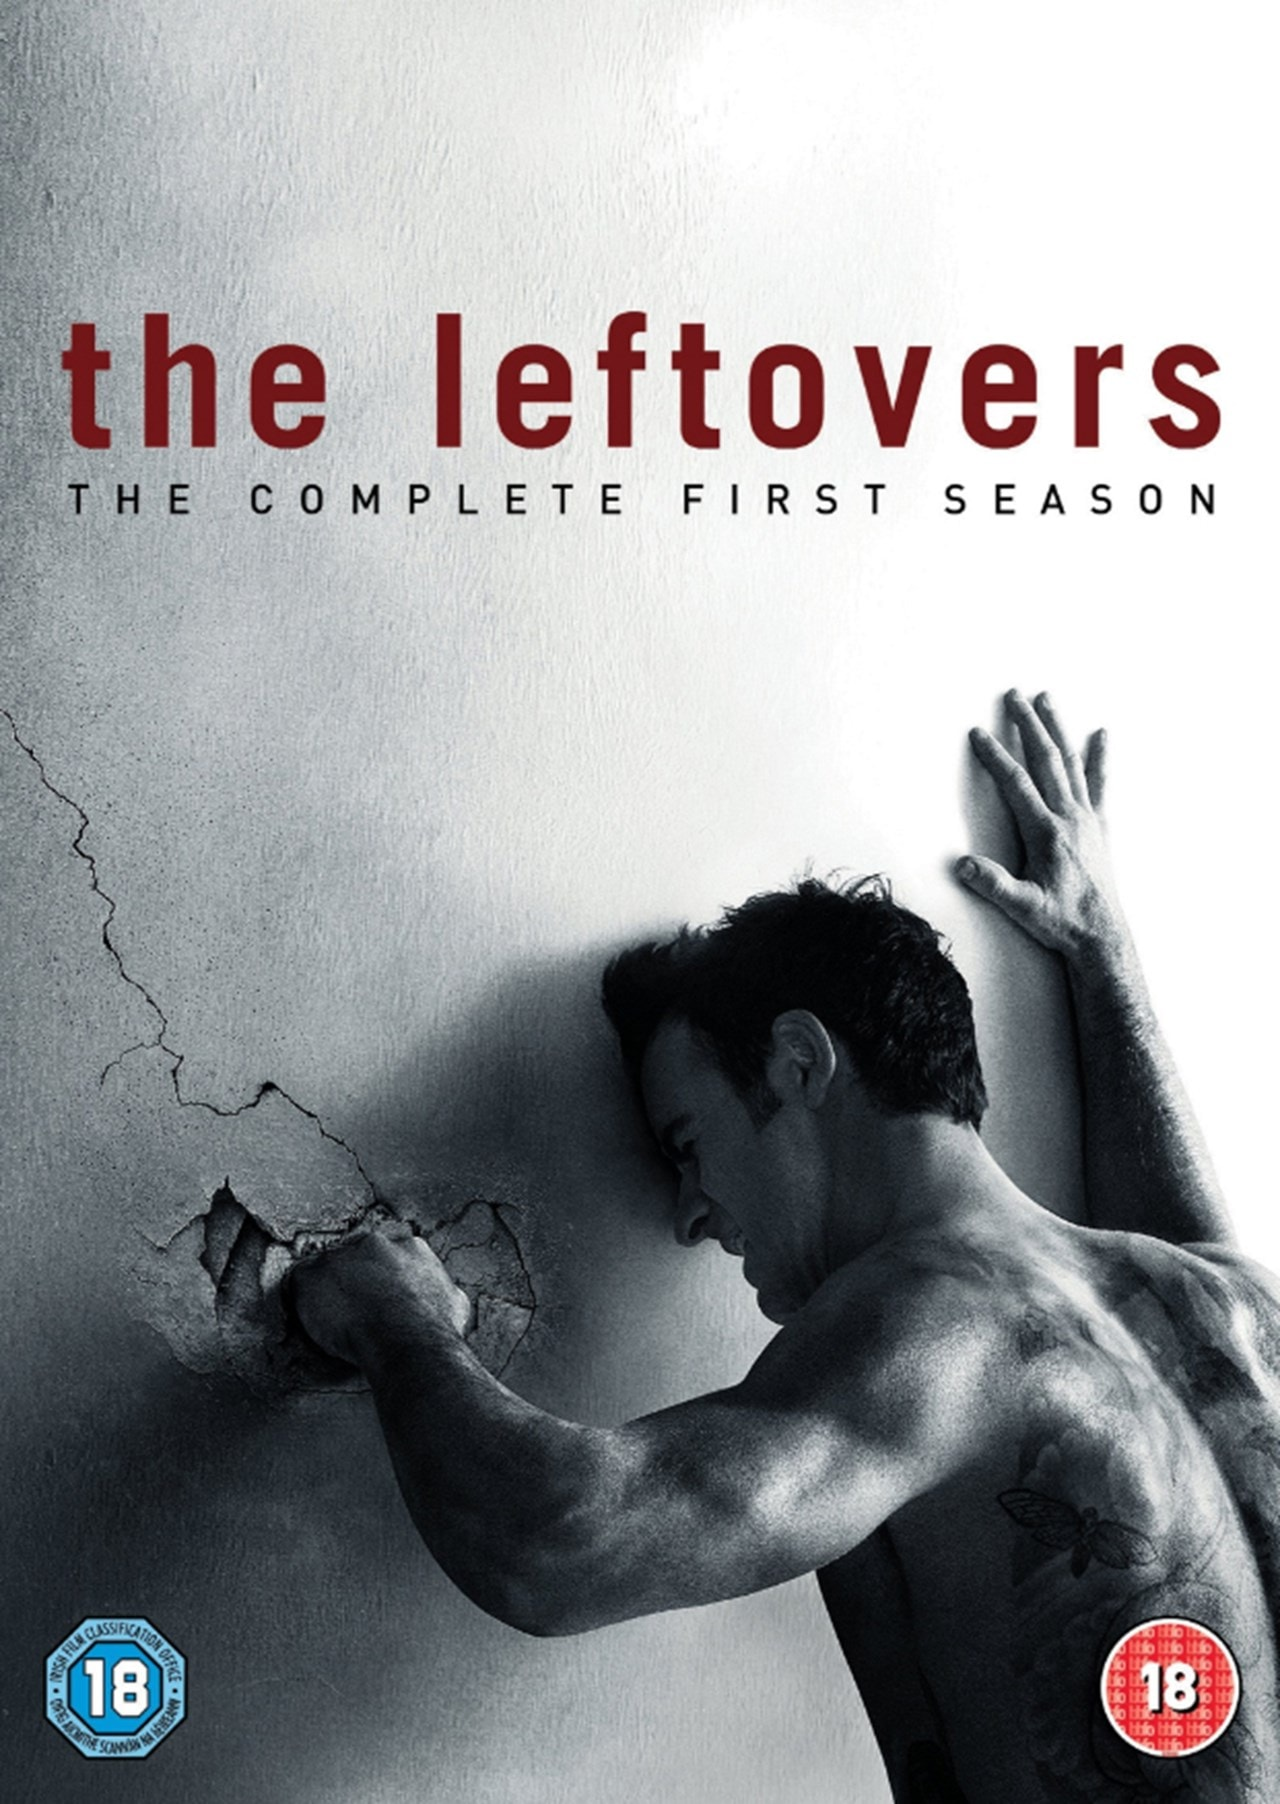 The Leftovers: The Complete First Season - 1